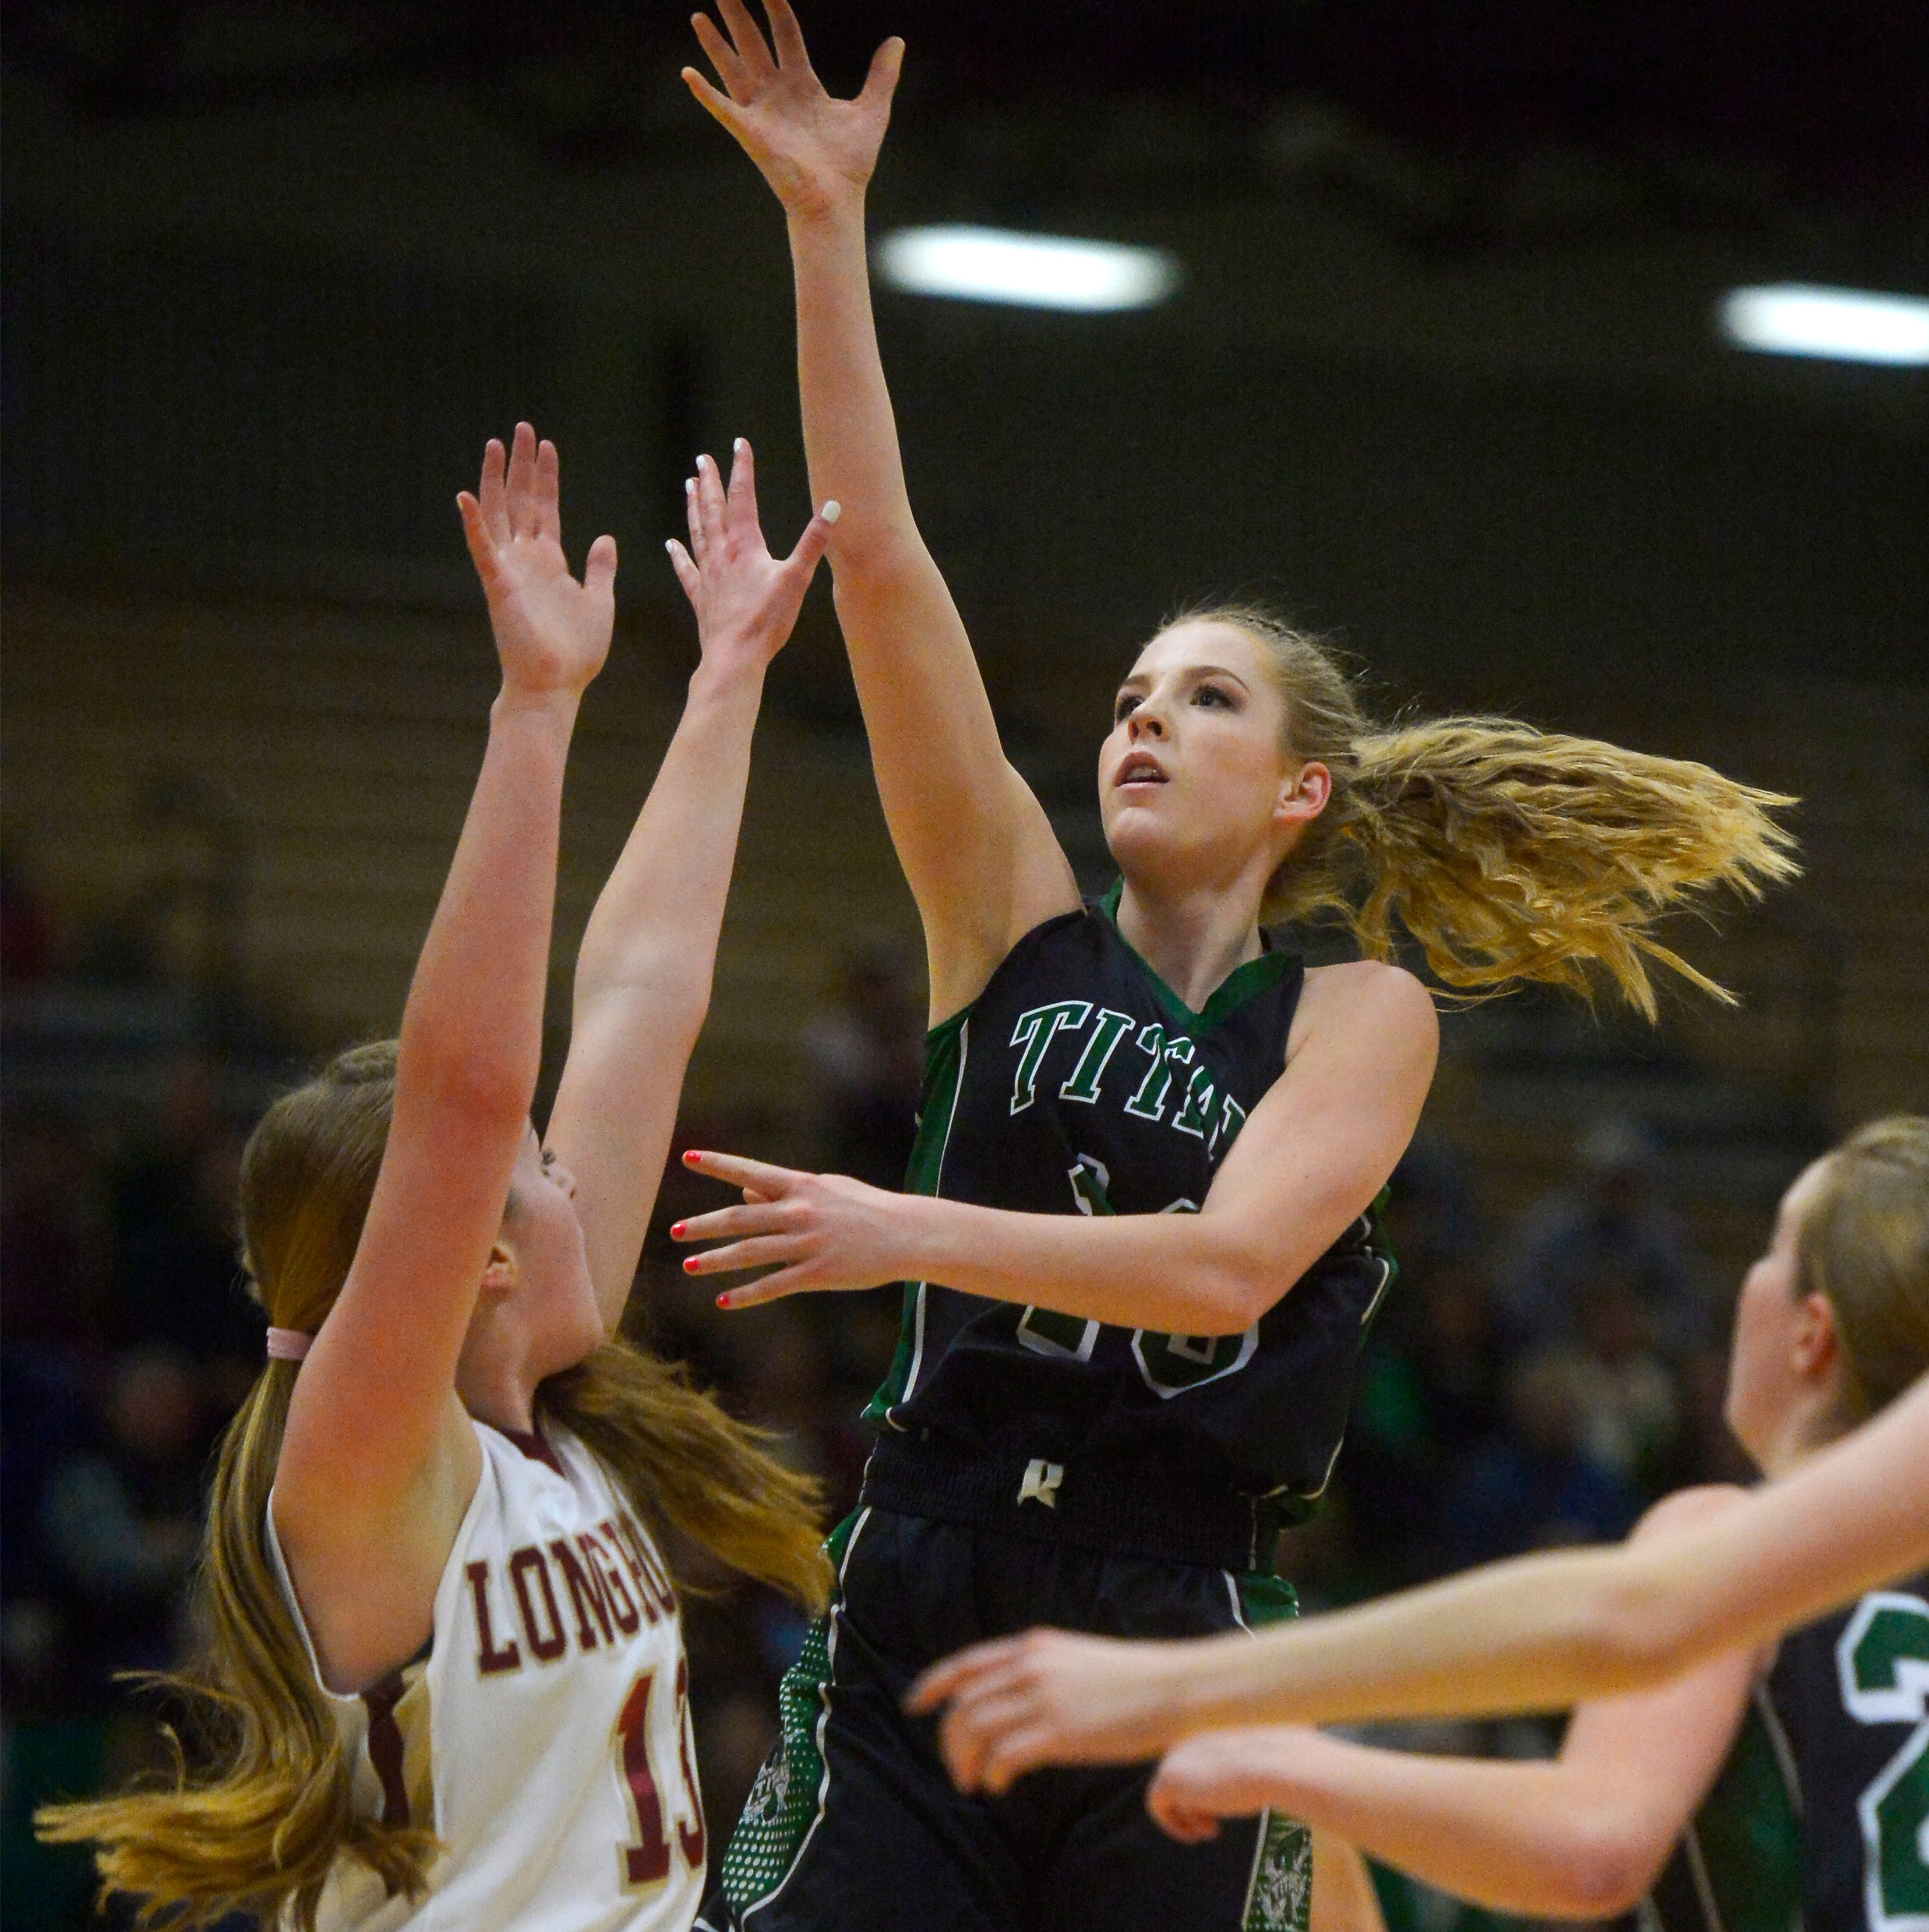 It's been a memorable season for girls' basketball fans in Hobson, Moore and Judith Gap